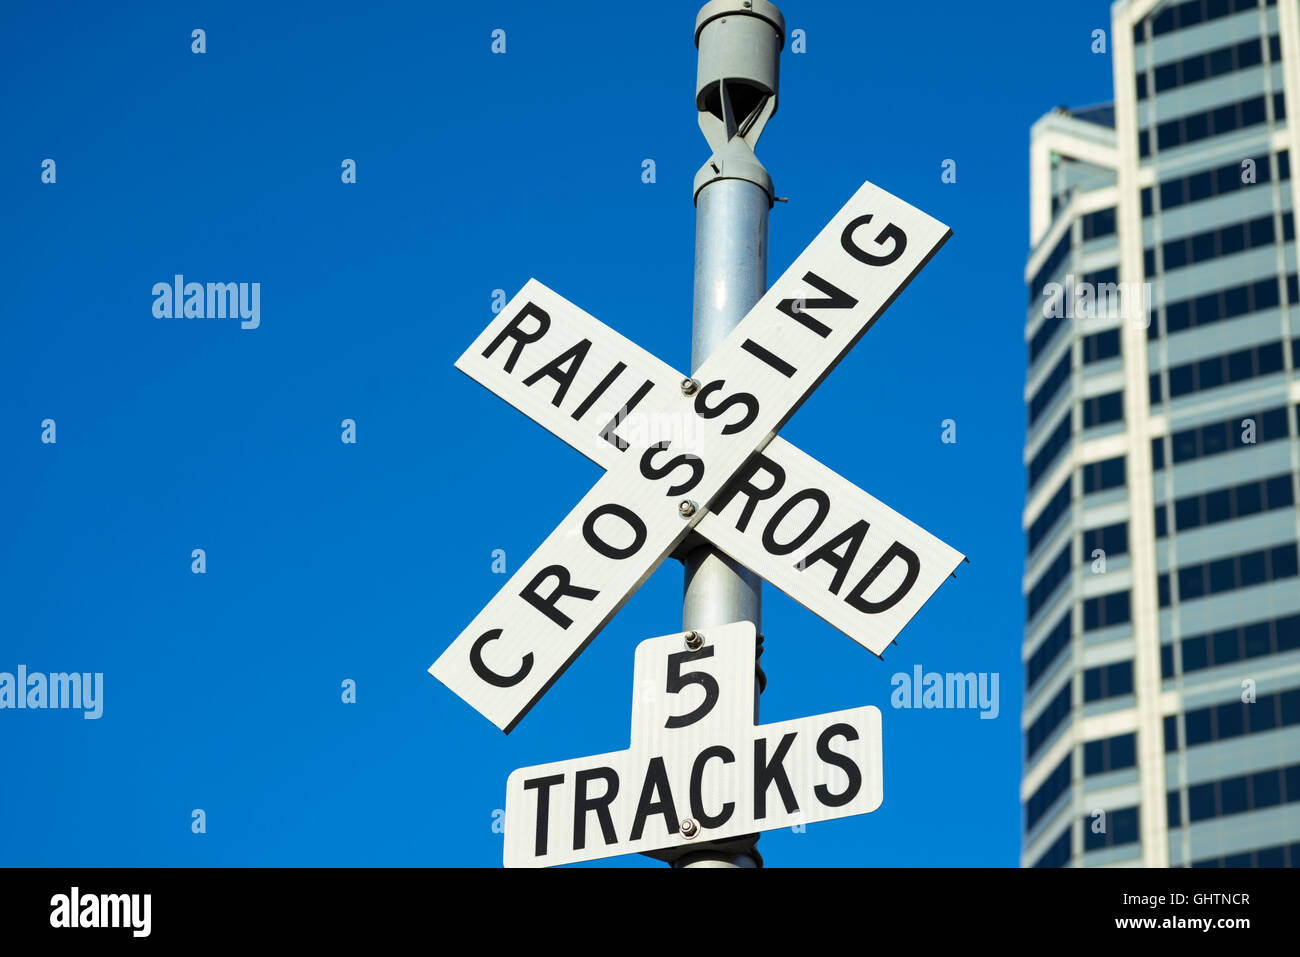 railroad crossing sign - Stock Image